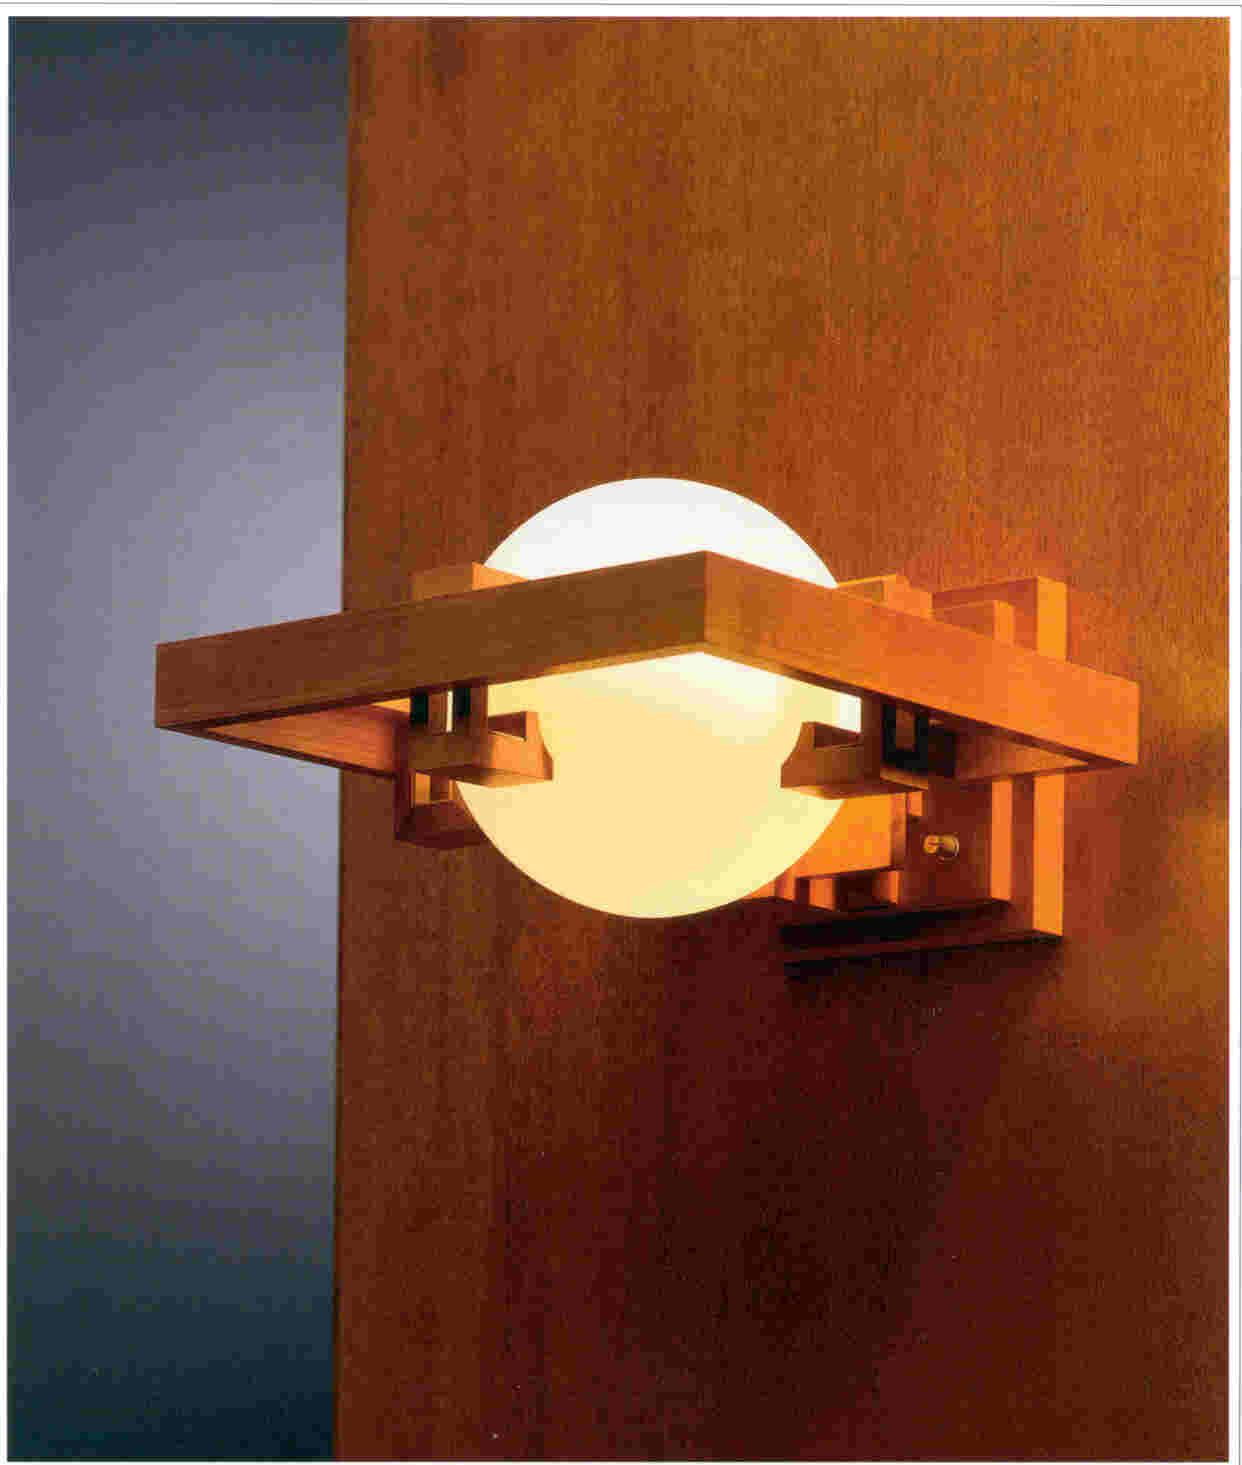 Frank lloyd wright wall sconce designed for the robie house chicago illinois frank lloyd Bathroom light fixtures chicago